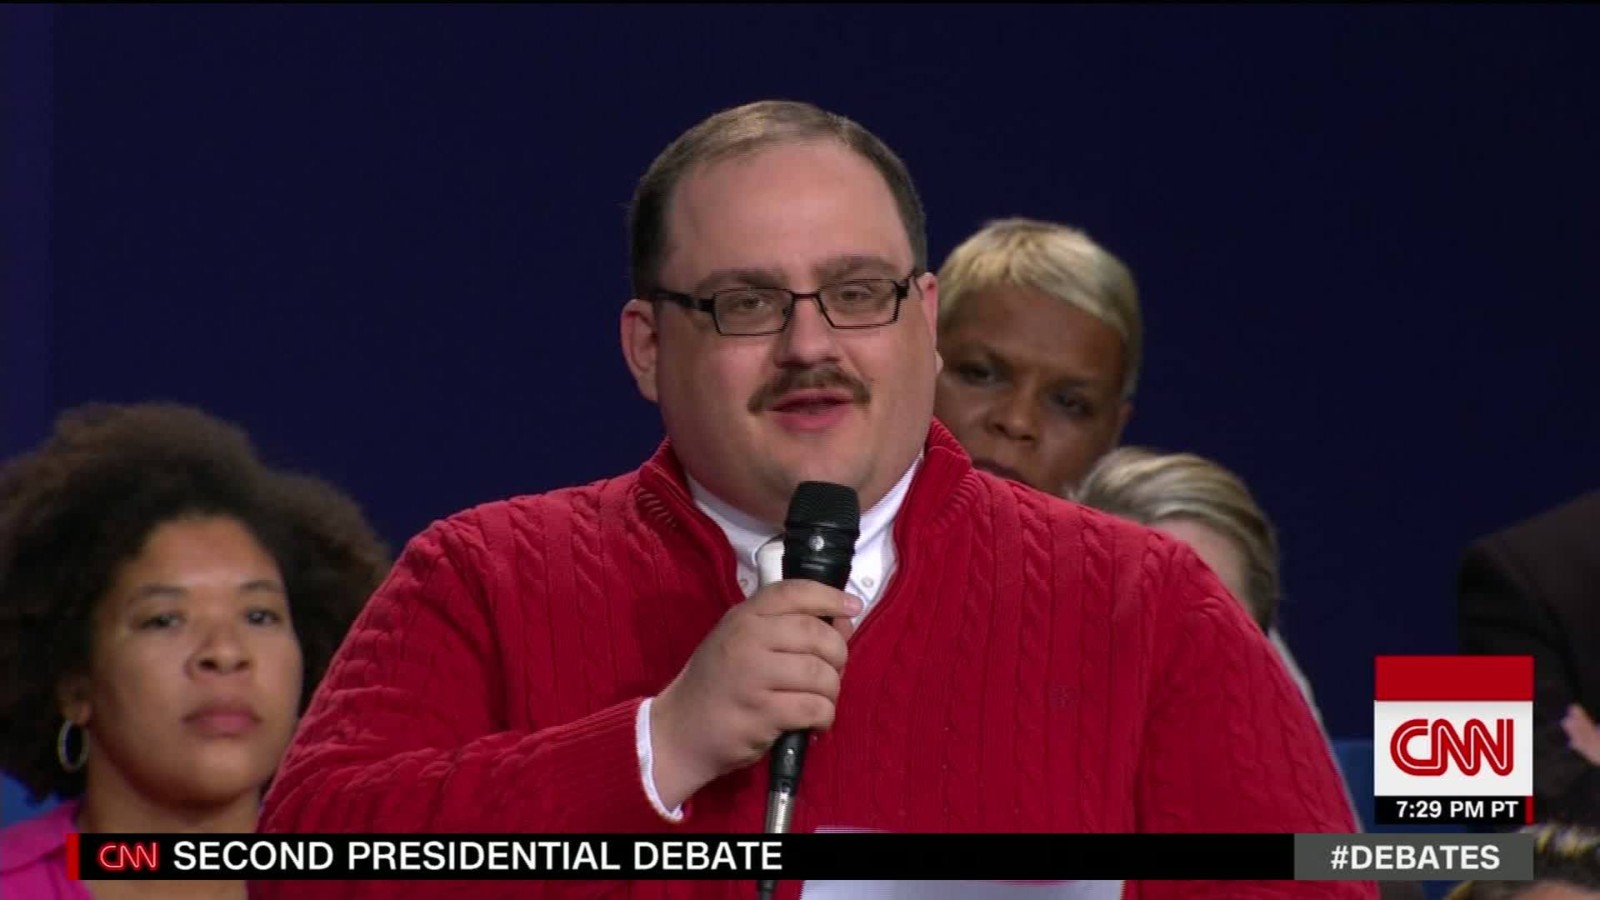 Ken Bone: The man who won the 2nd presidential debate - CNNPolitics